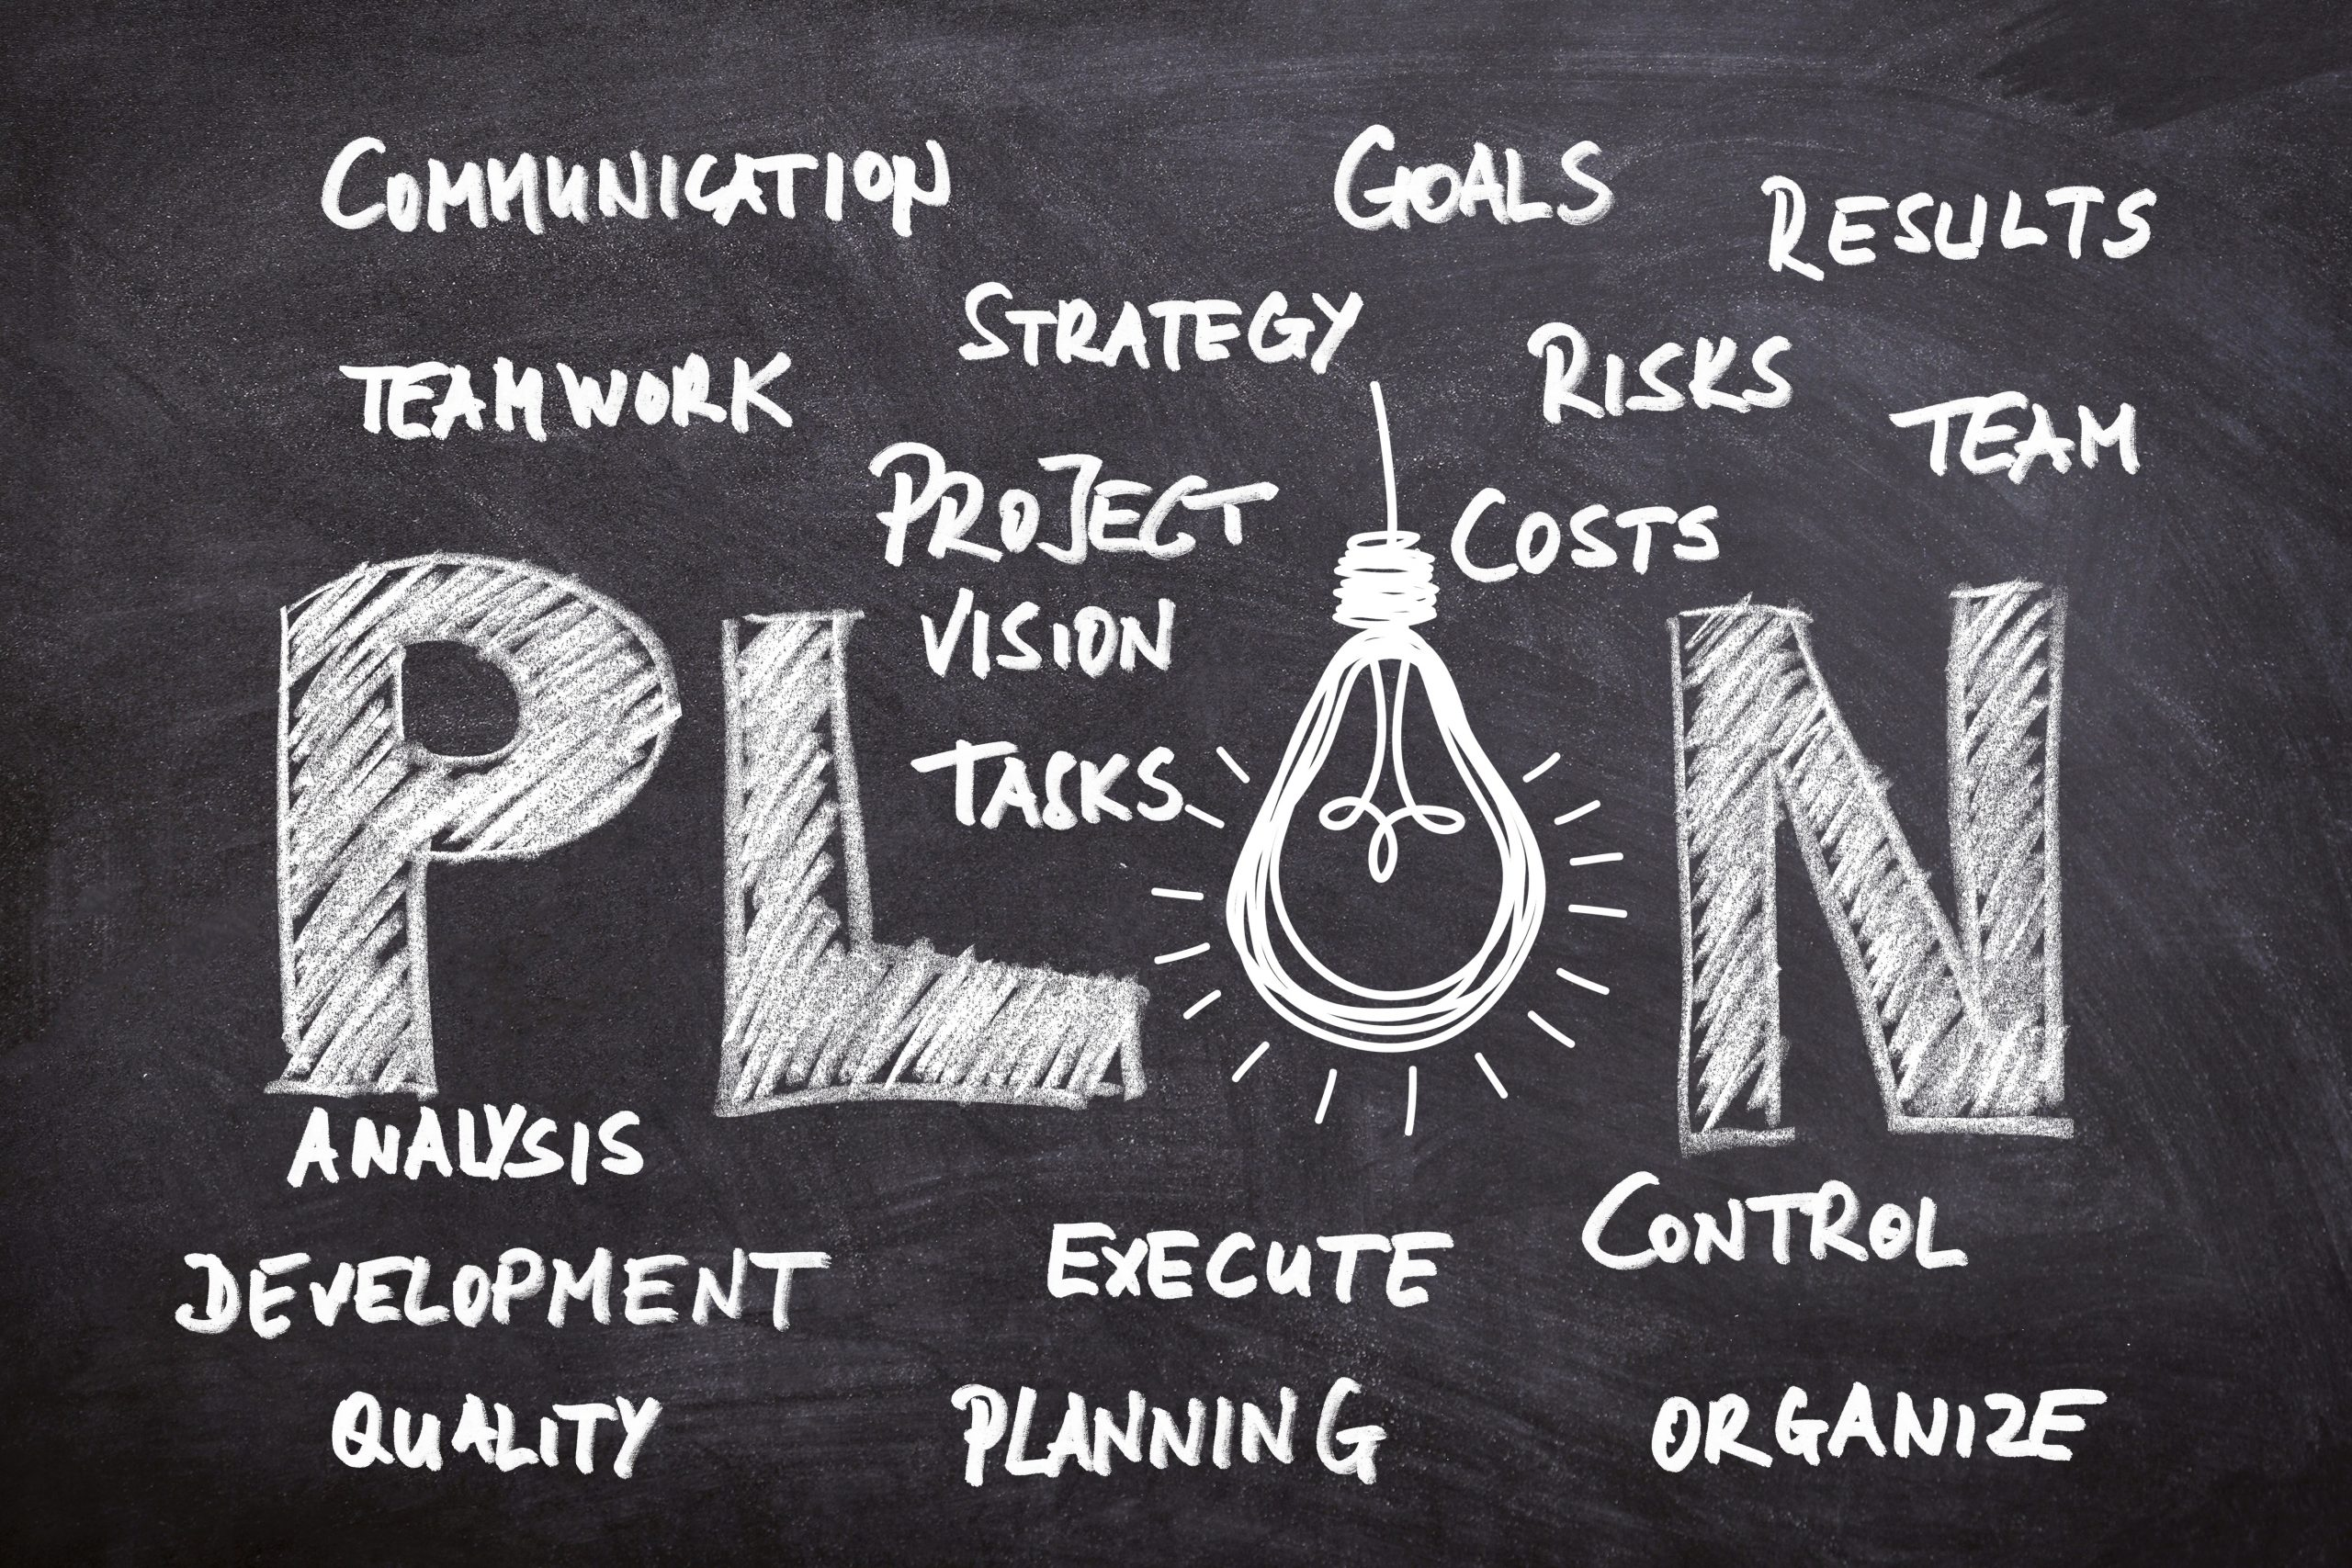 New Business Formation - Business Plans & Advice